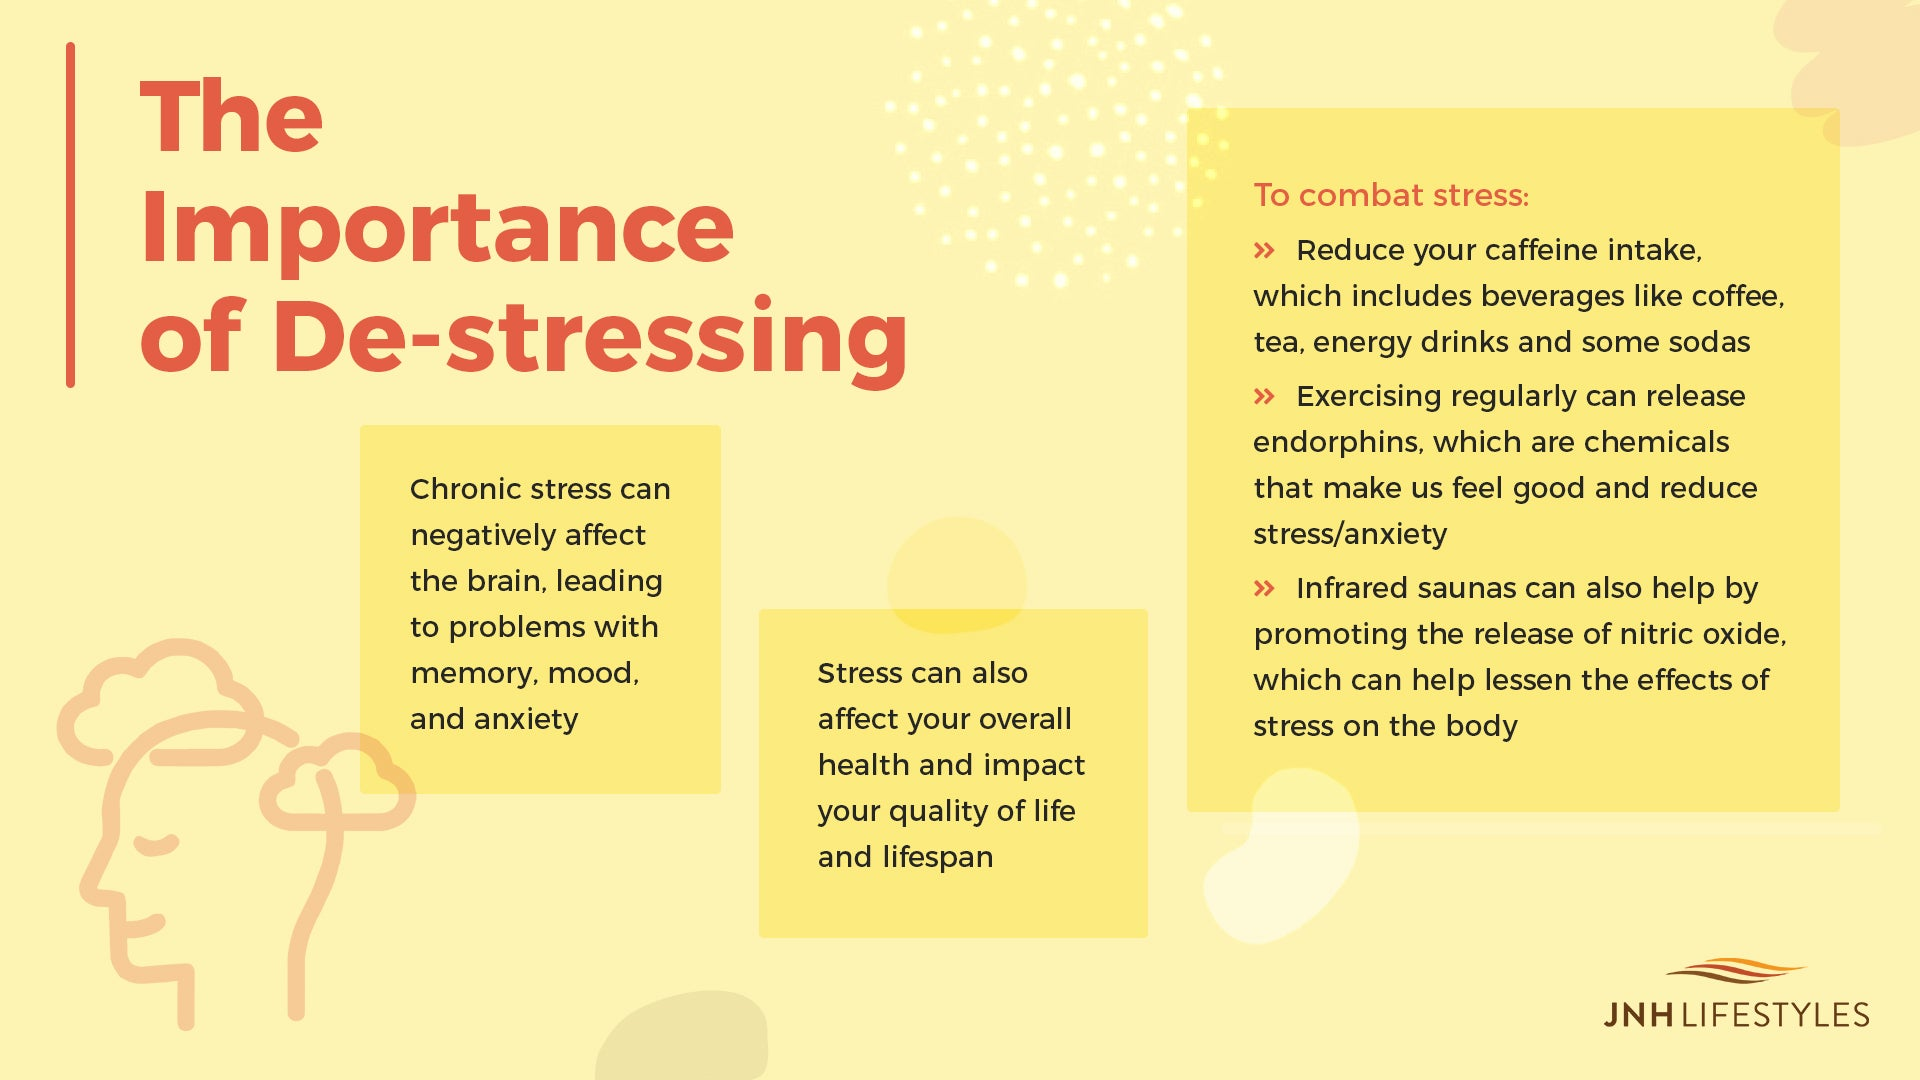 The Importance of De-stressing -Chronic stress can negatively affect the brain, leading to problems with memory, mood, and anxiety -Stress can also affect your overall health and impact your quality of life and lifespan -To combat stress: -Reduce your caffeine intake, which includes beverages like coffee, tea, energy drinks and some sodas -Exercising regularly can release endorphins, which are chemicals that make us feel good and reduce stress/anxiety -Infrared saunas can also help by promoting the release of nitric oxide, which can help lessen the effects of stress on the body